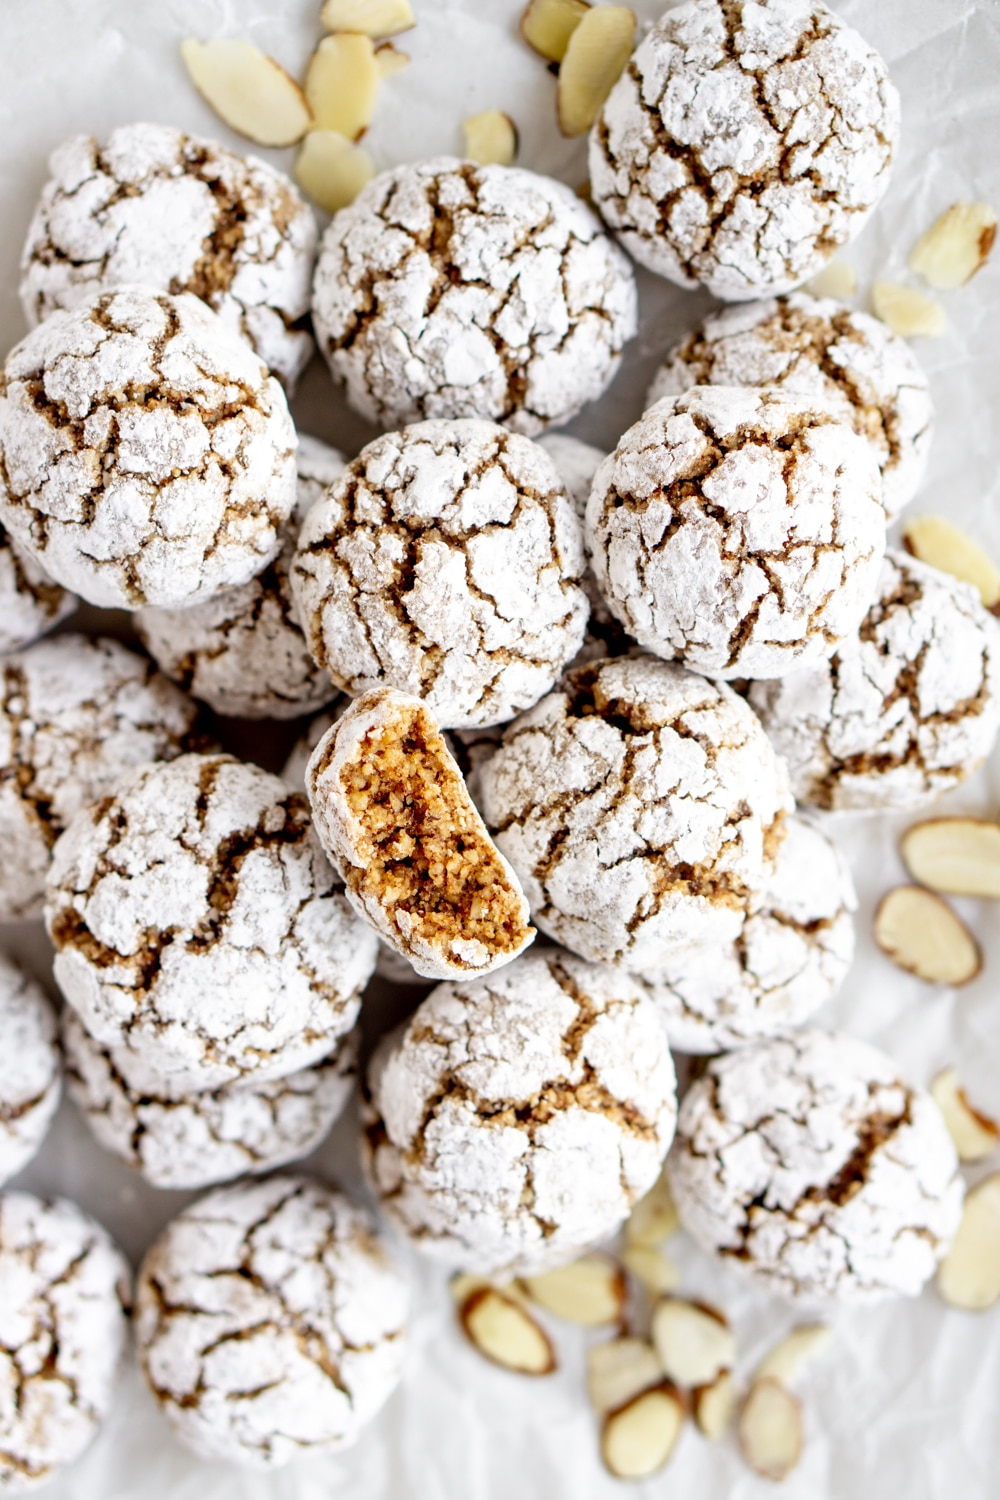 Overhead shot of many amaretti cookies and sliced almonds